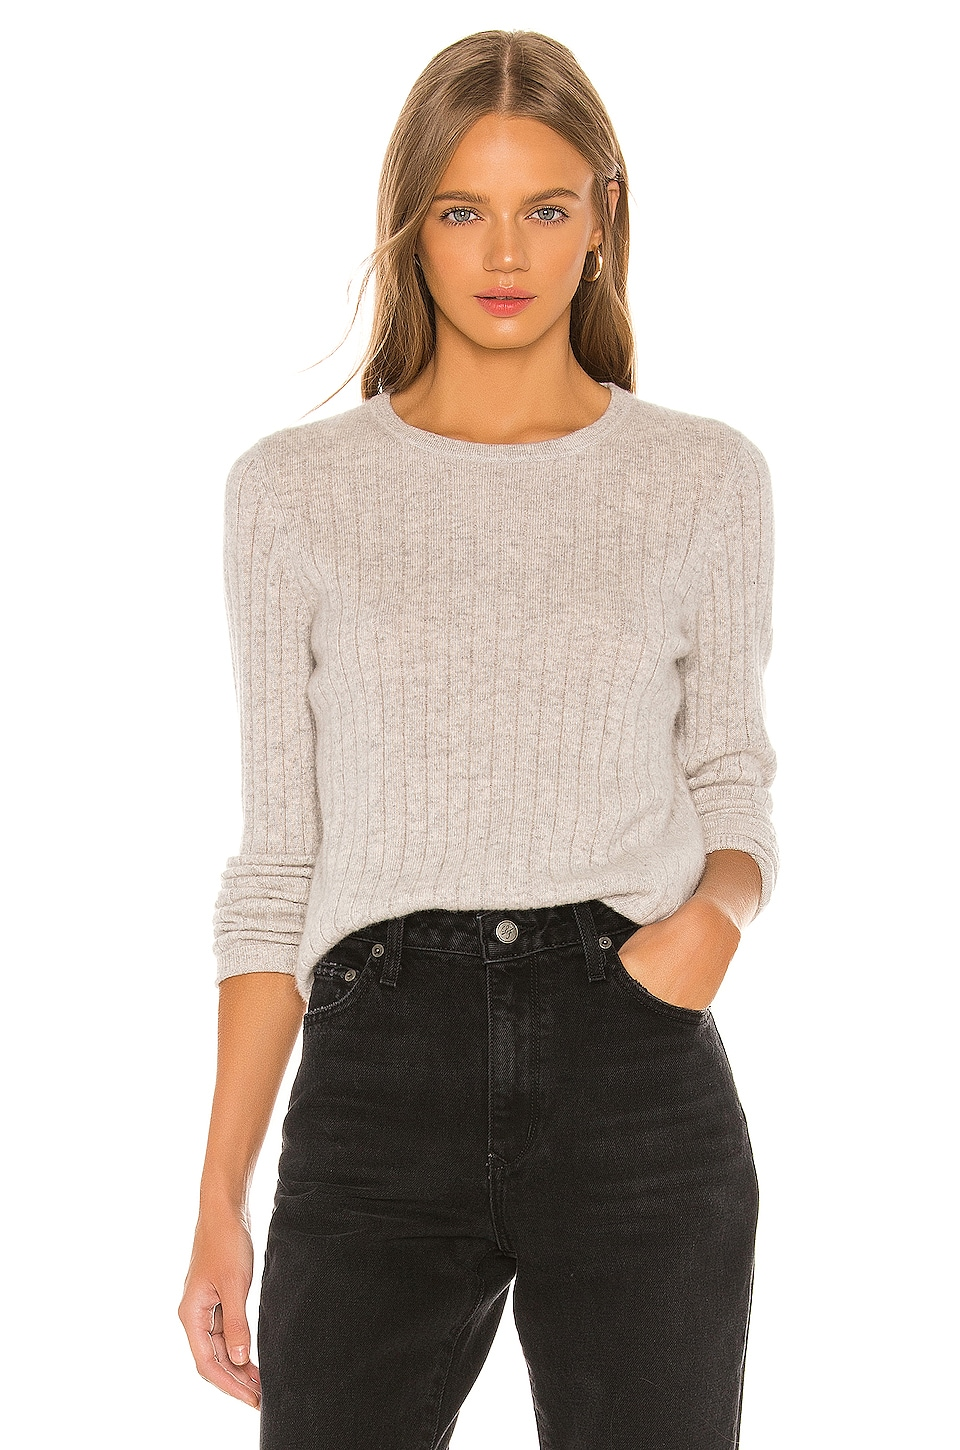 White + Warren Slim Essential Crew Sweater in Misty Grey Heather